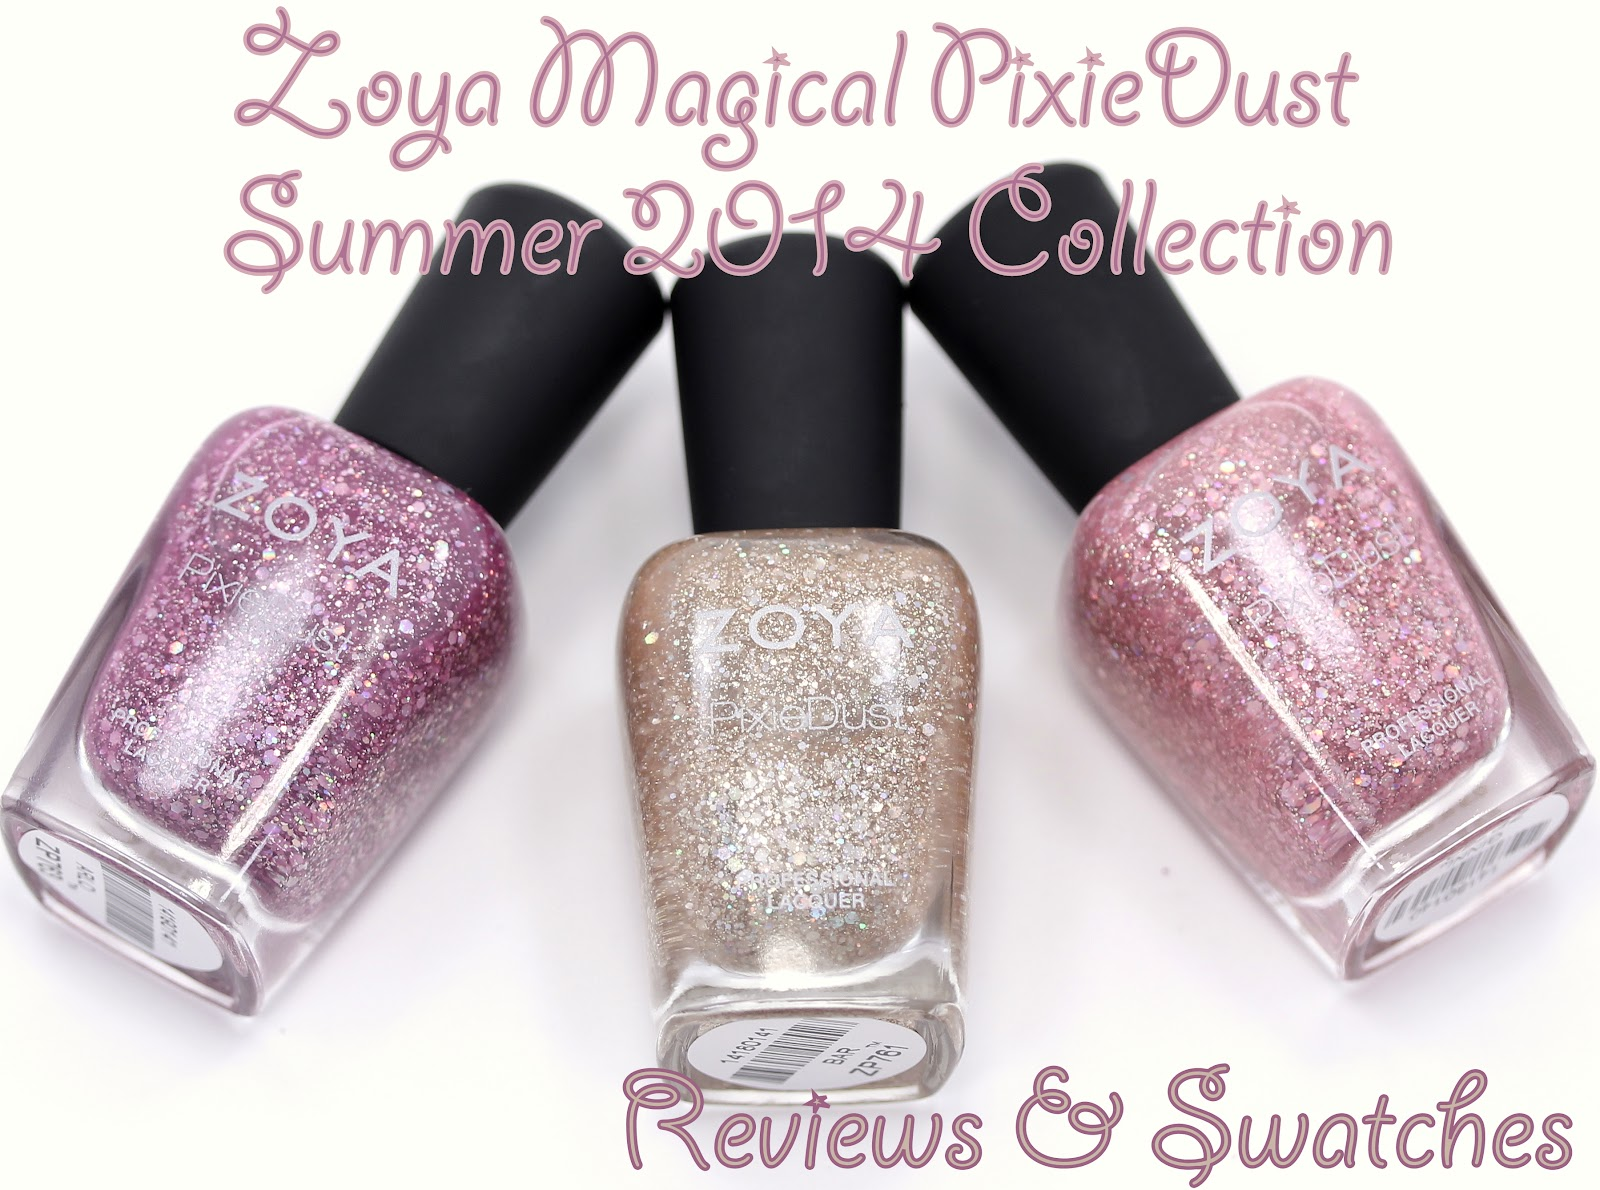 Zoya Magical PixieDust Sumer 2014 Collection